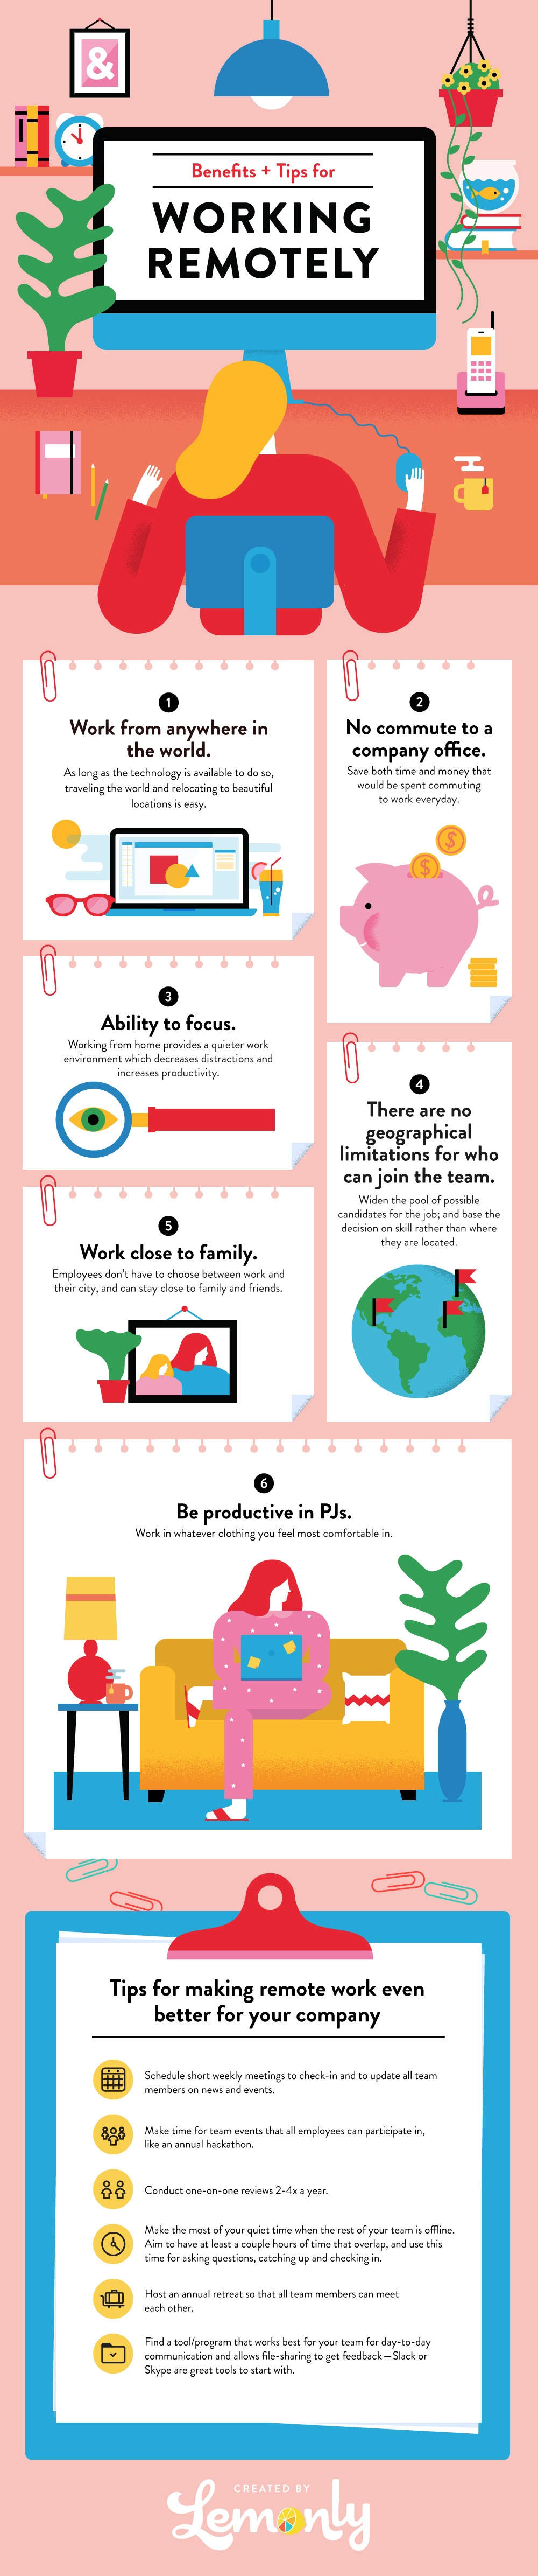 Benefits and Tips for Working Remotely Infographic